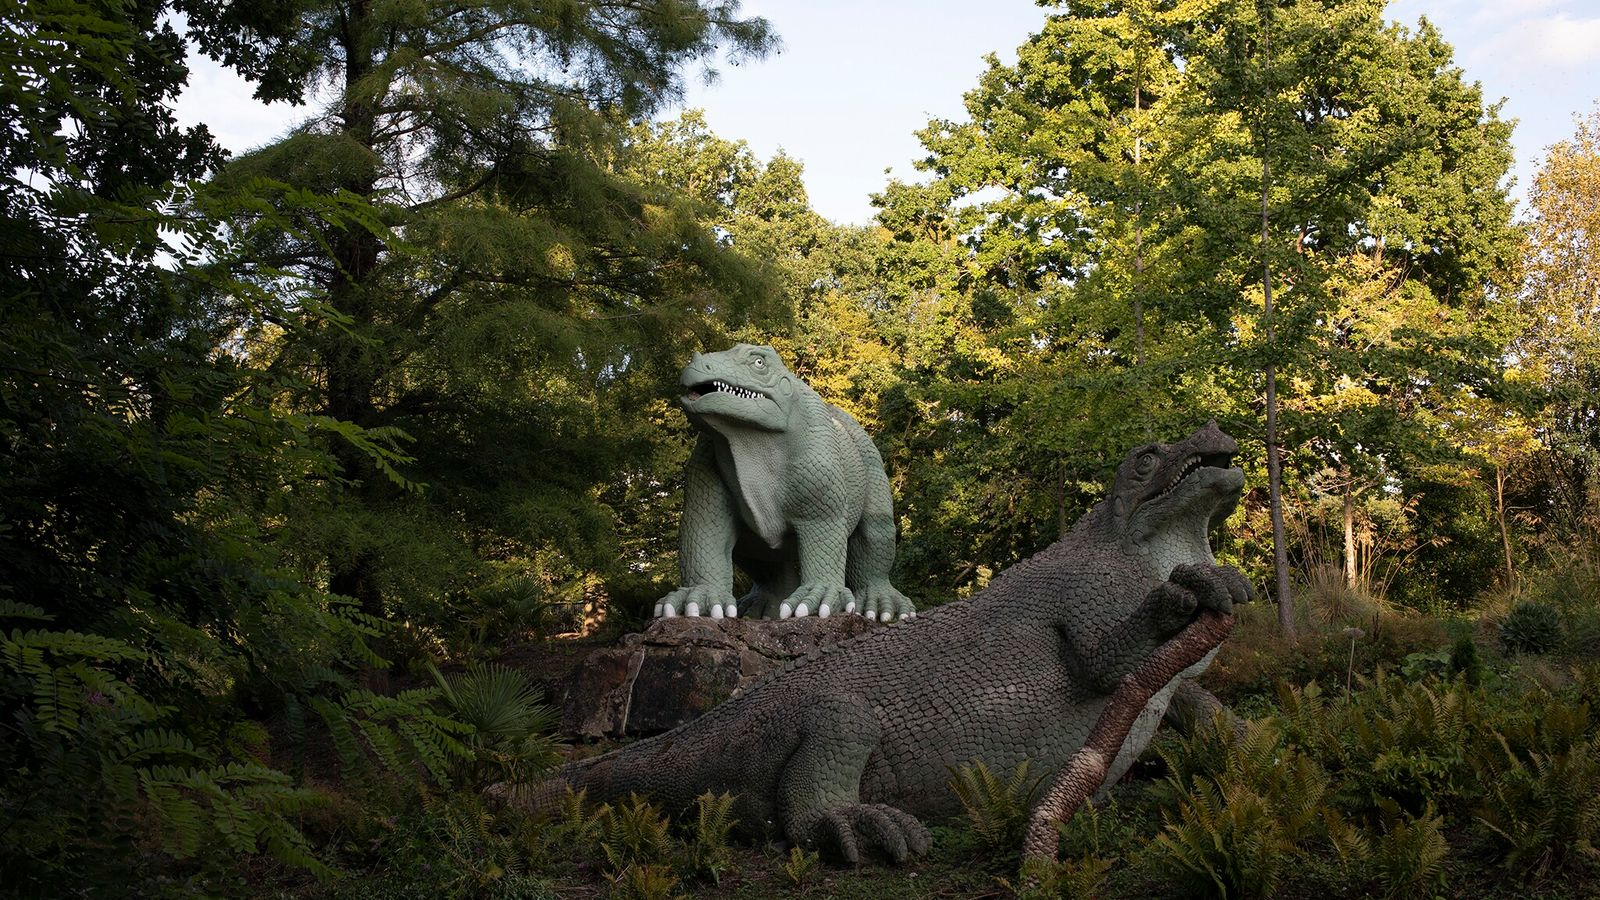 South London's Crystal Palace Park ishome to the world's first lifesize dinosaur statues.